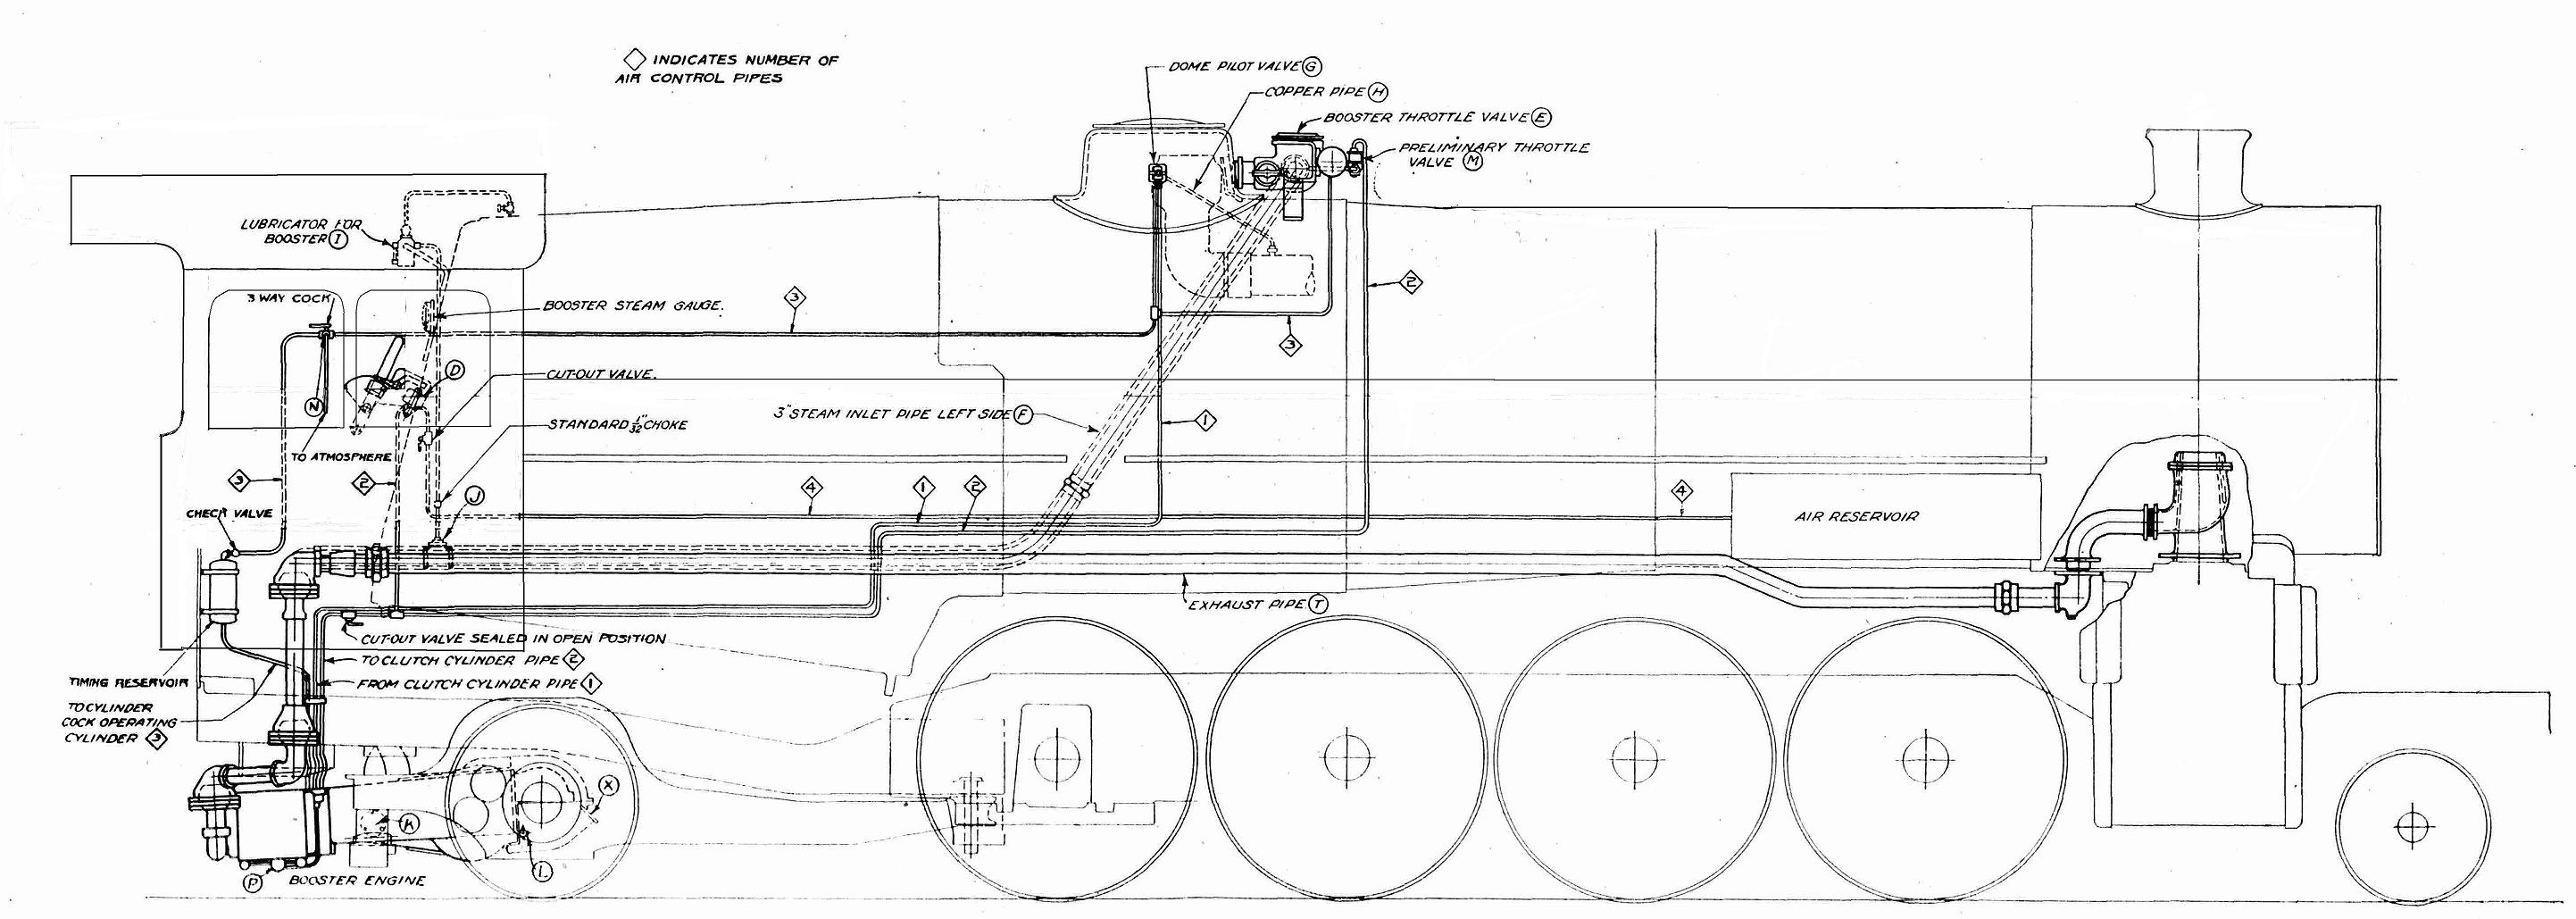 Lner Encyclopedia The Use Of Boosters On Steam Engine Piston Diagram Fig 21 Typical Booster Layout Click For Larger Image Mpeirson